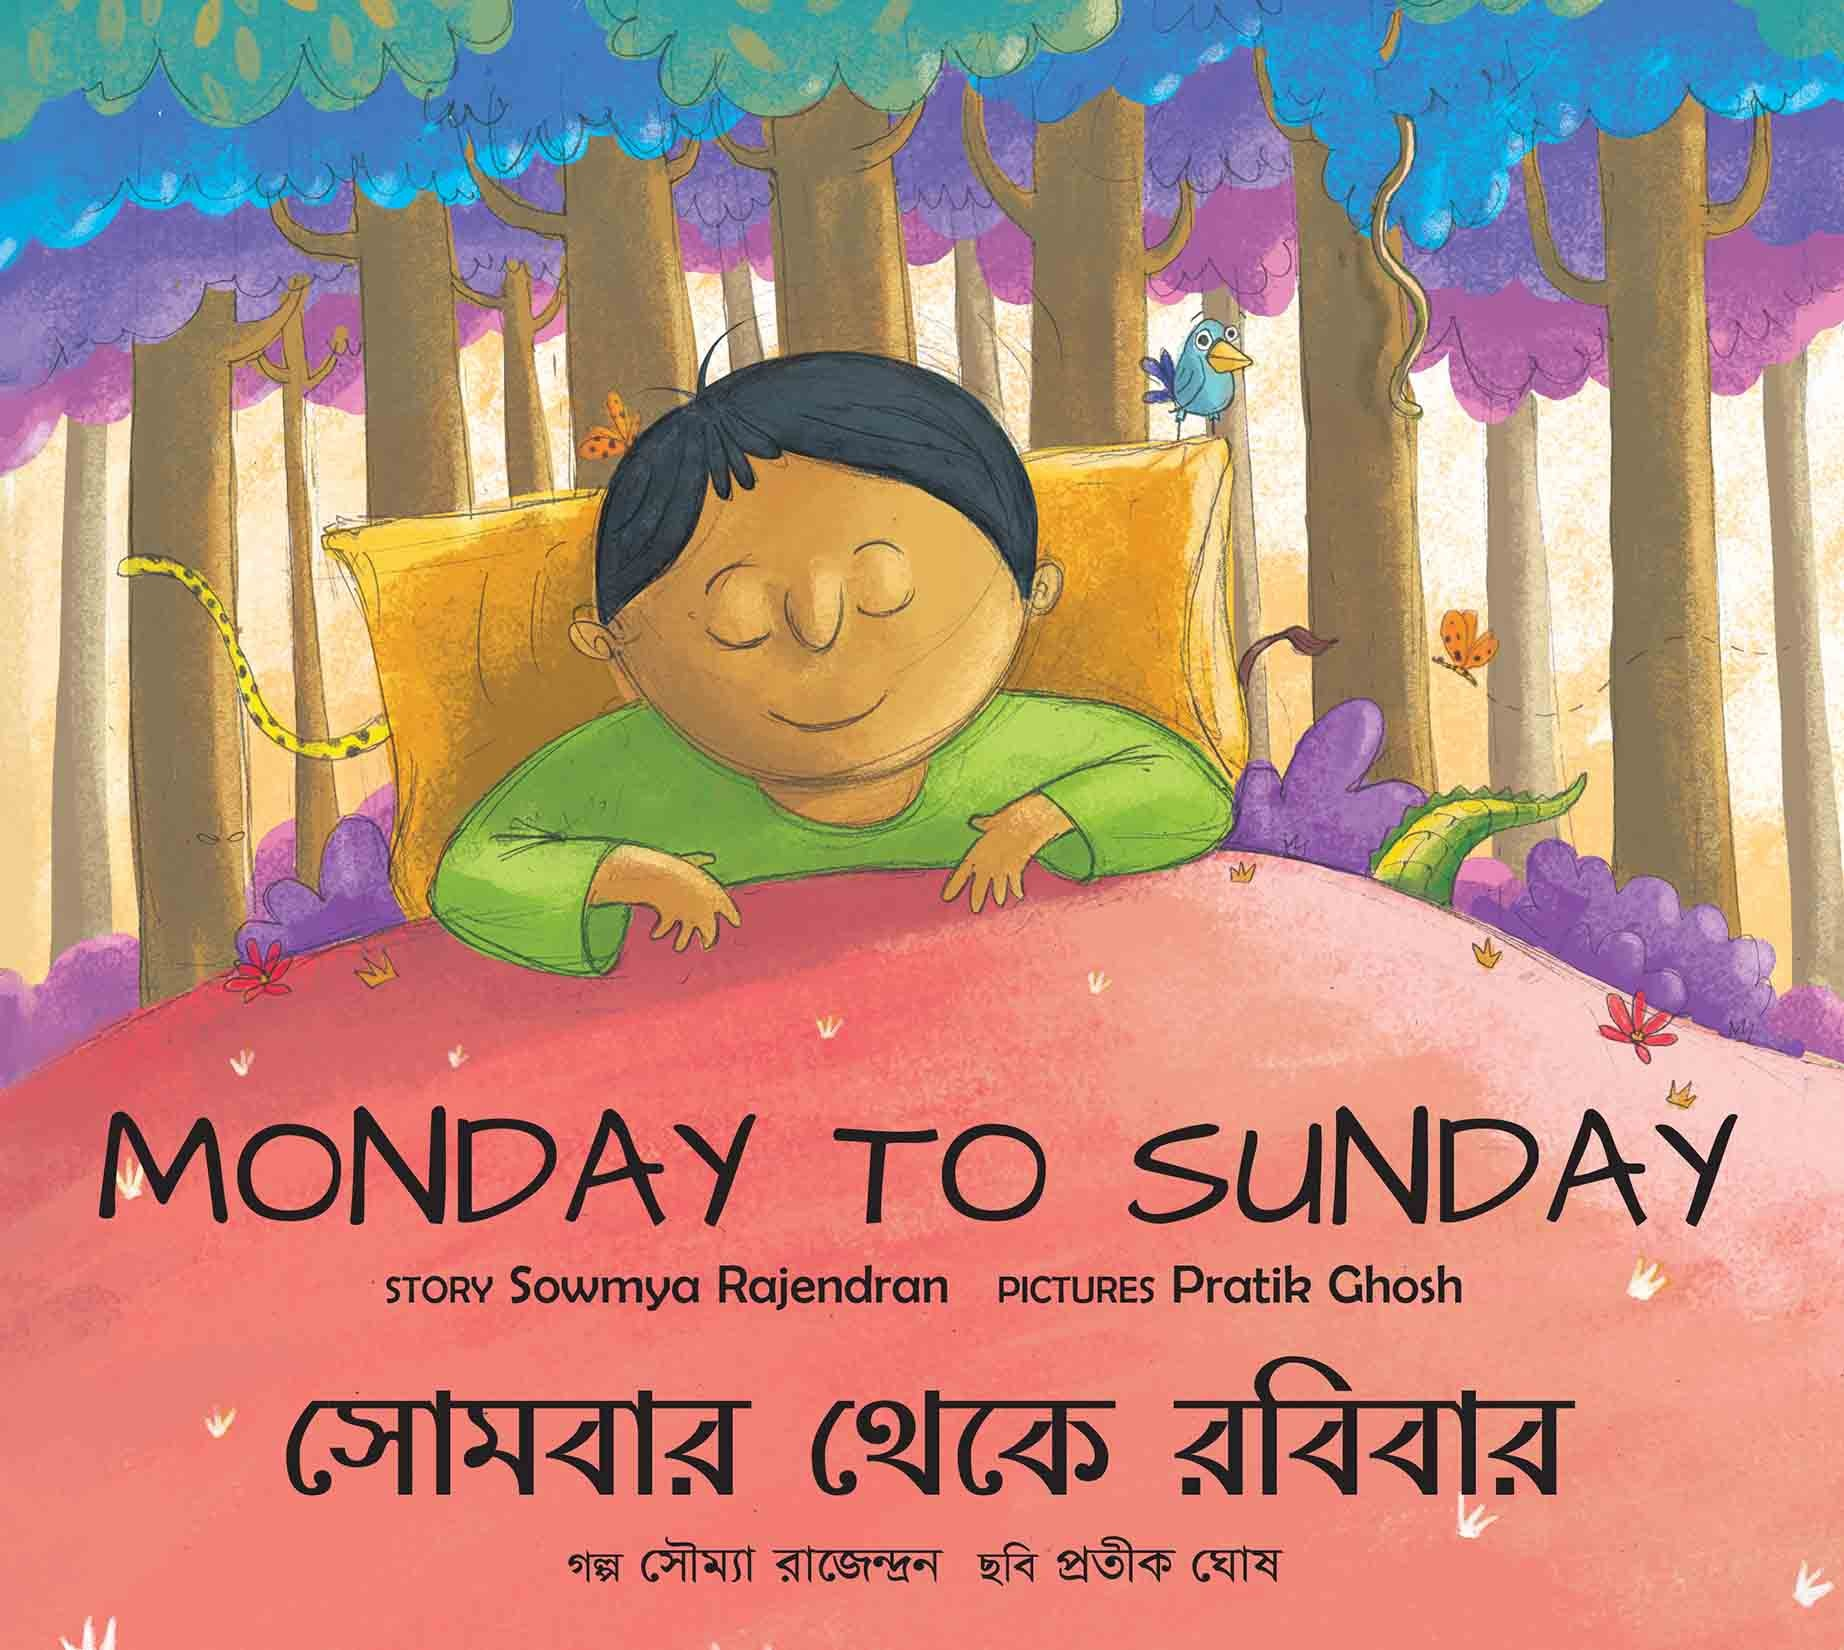 Monday To Sunday/Shomebar Theke Robibar (English-Bengali)